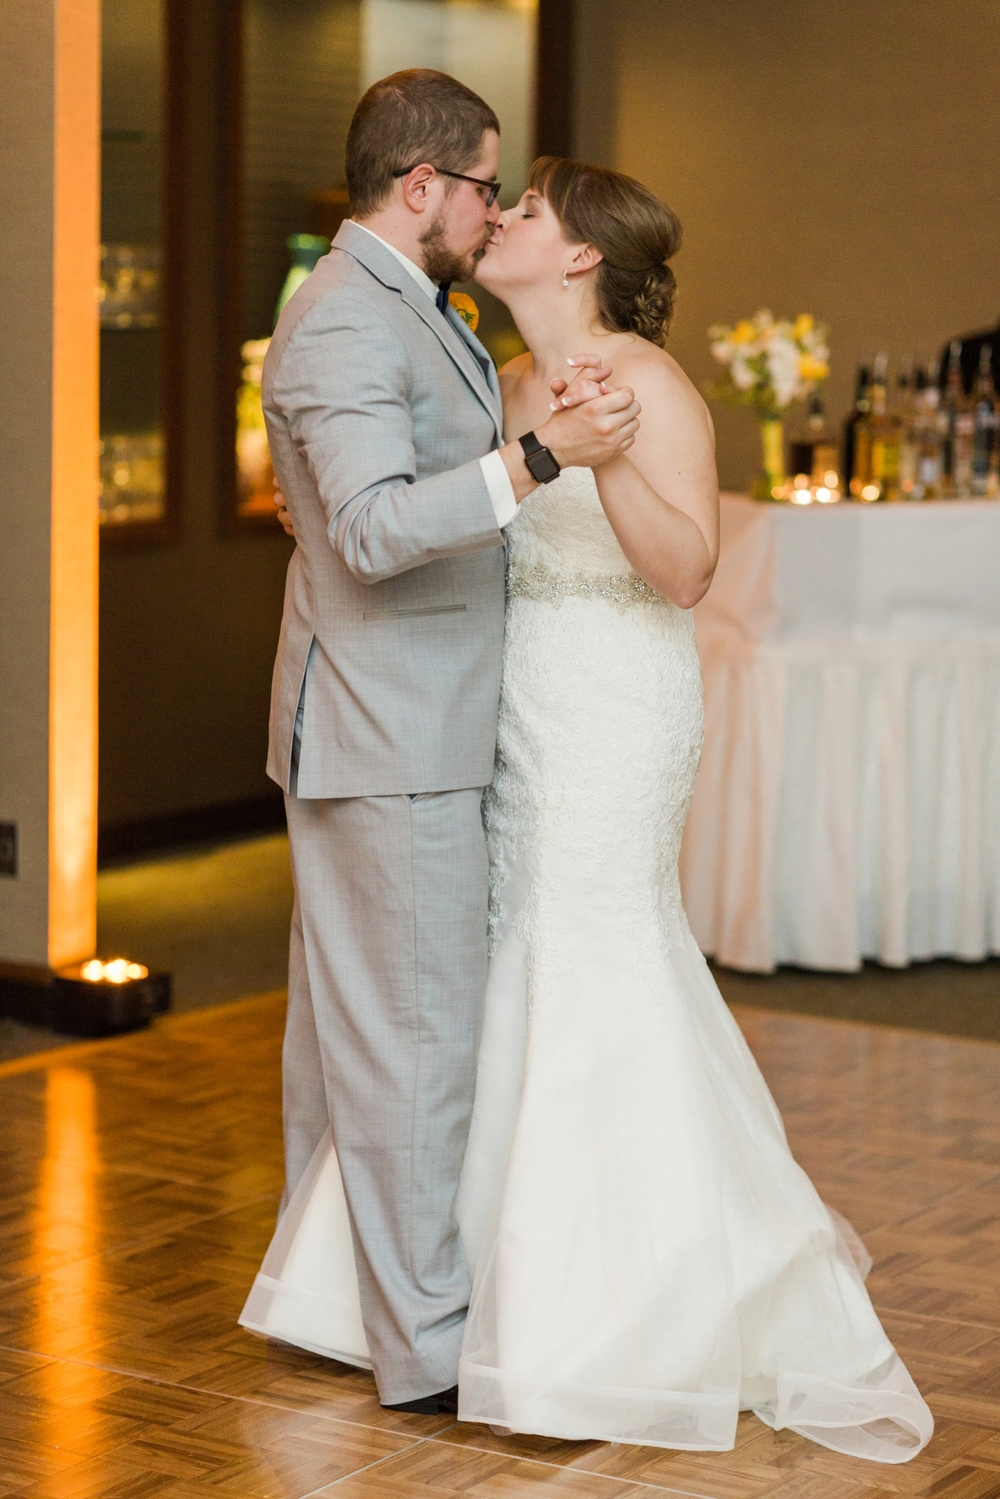 indianapolis_indiana_wedding_photographer_the_montage_chloe_luka_photography_6245.jpg